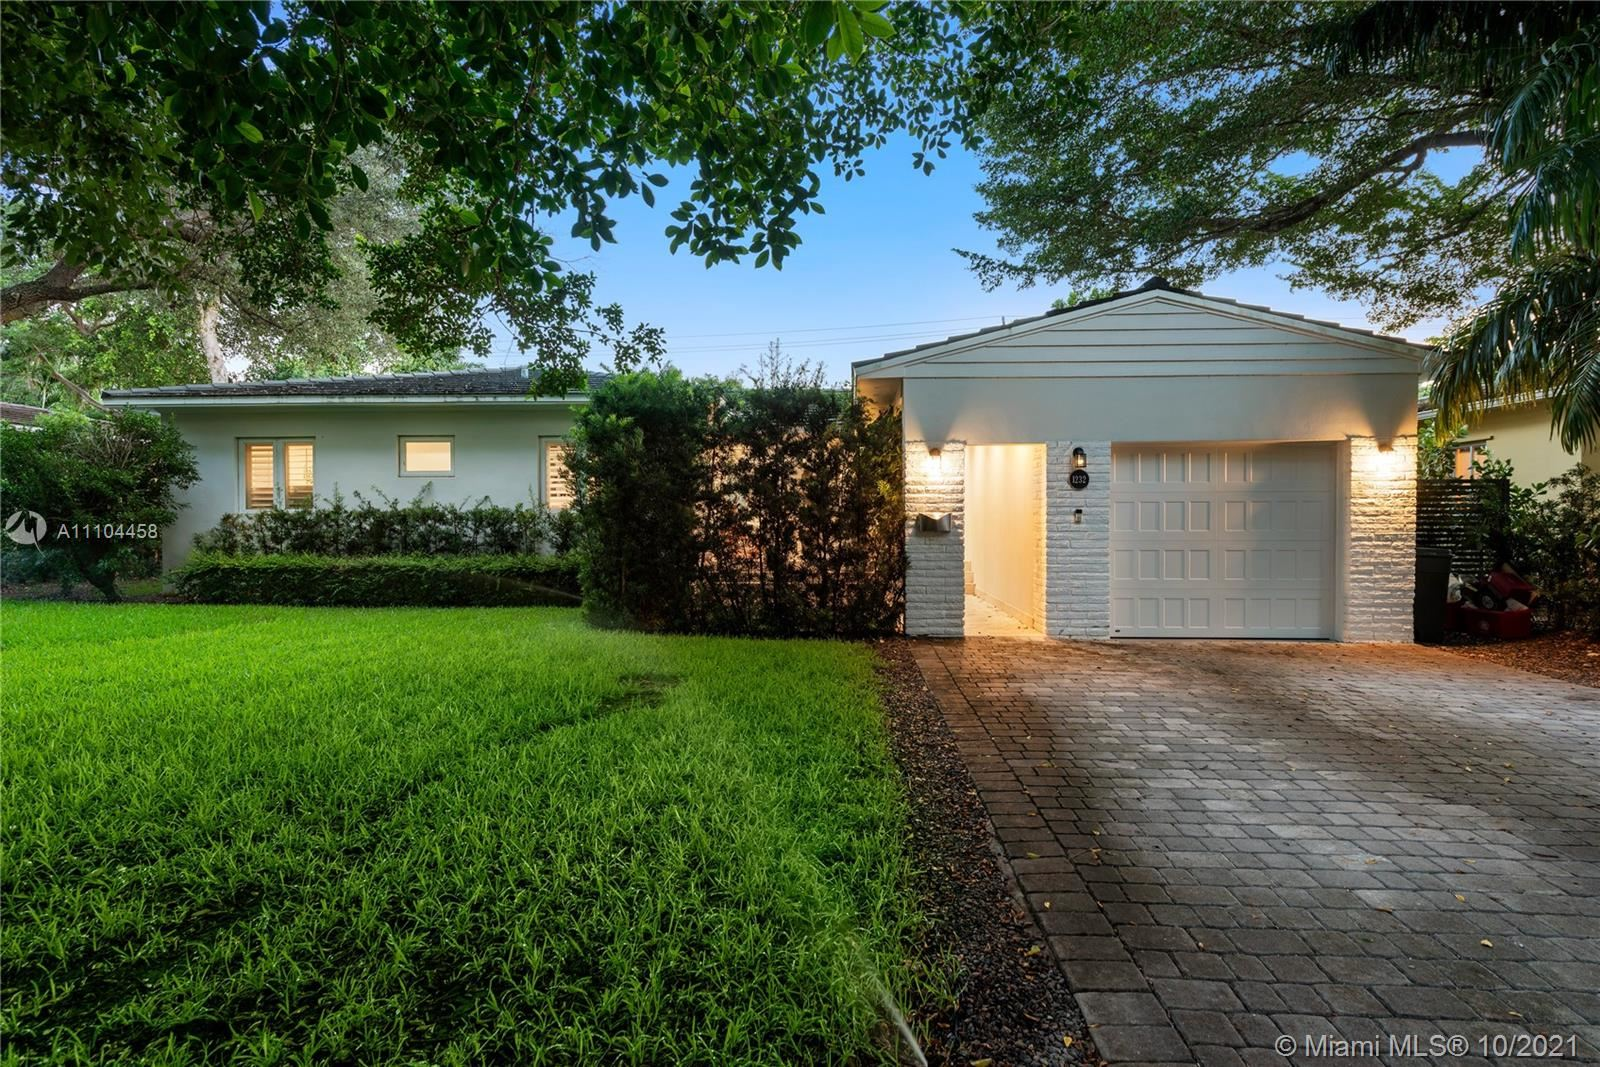 Photo of 1232 Manati Ave, Coral Gables, FL 33146 (MLS # A11104458)